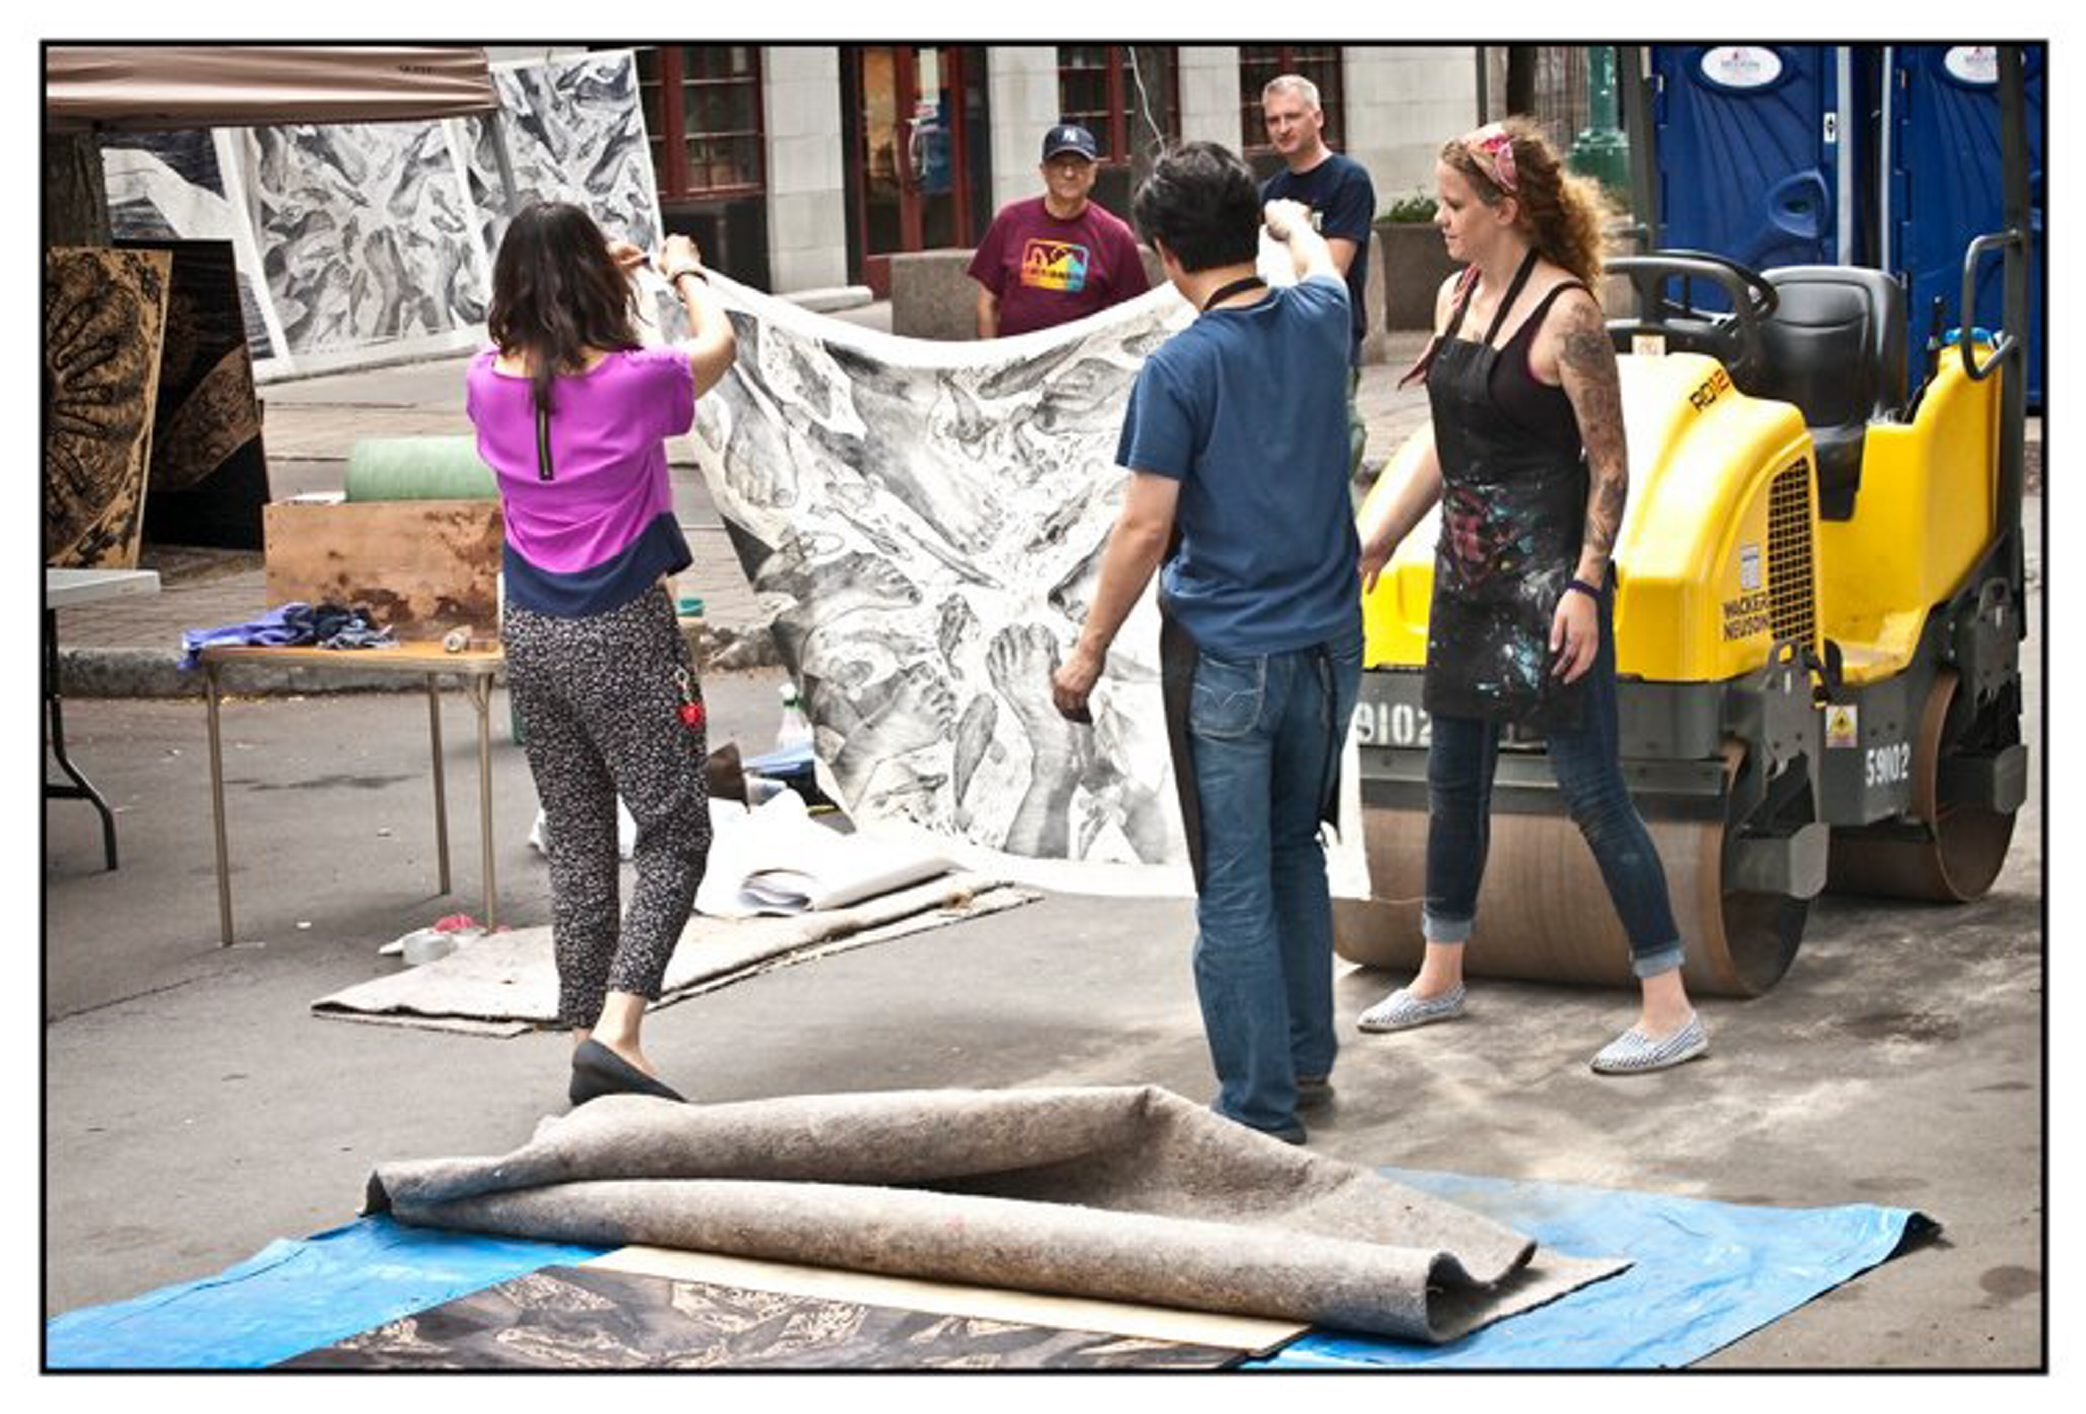 Visitors to the Western New York Book Arts Center hold up a print made with a steamroller on the center's sidewalk in 2012 during its annual Buffalo Book Fest.